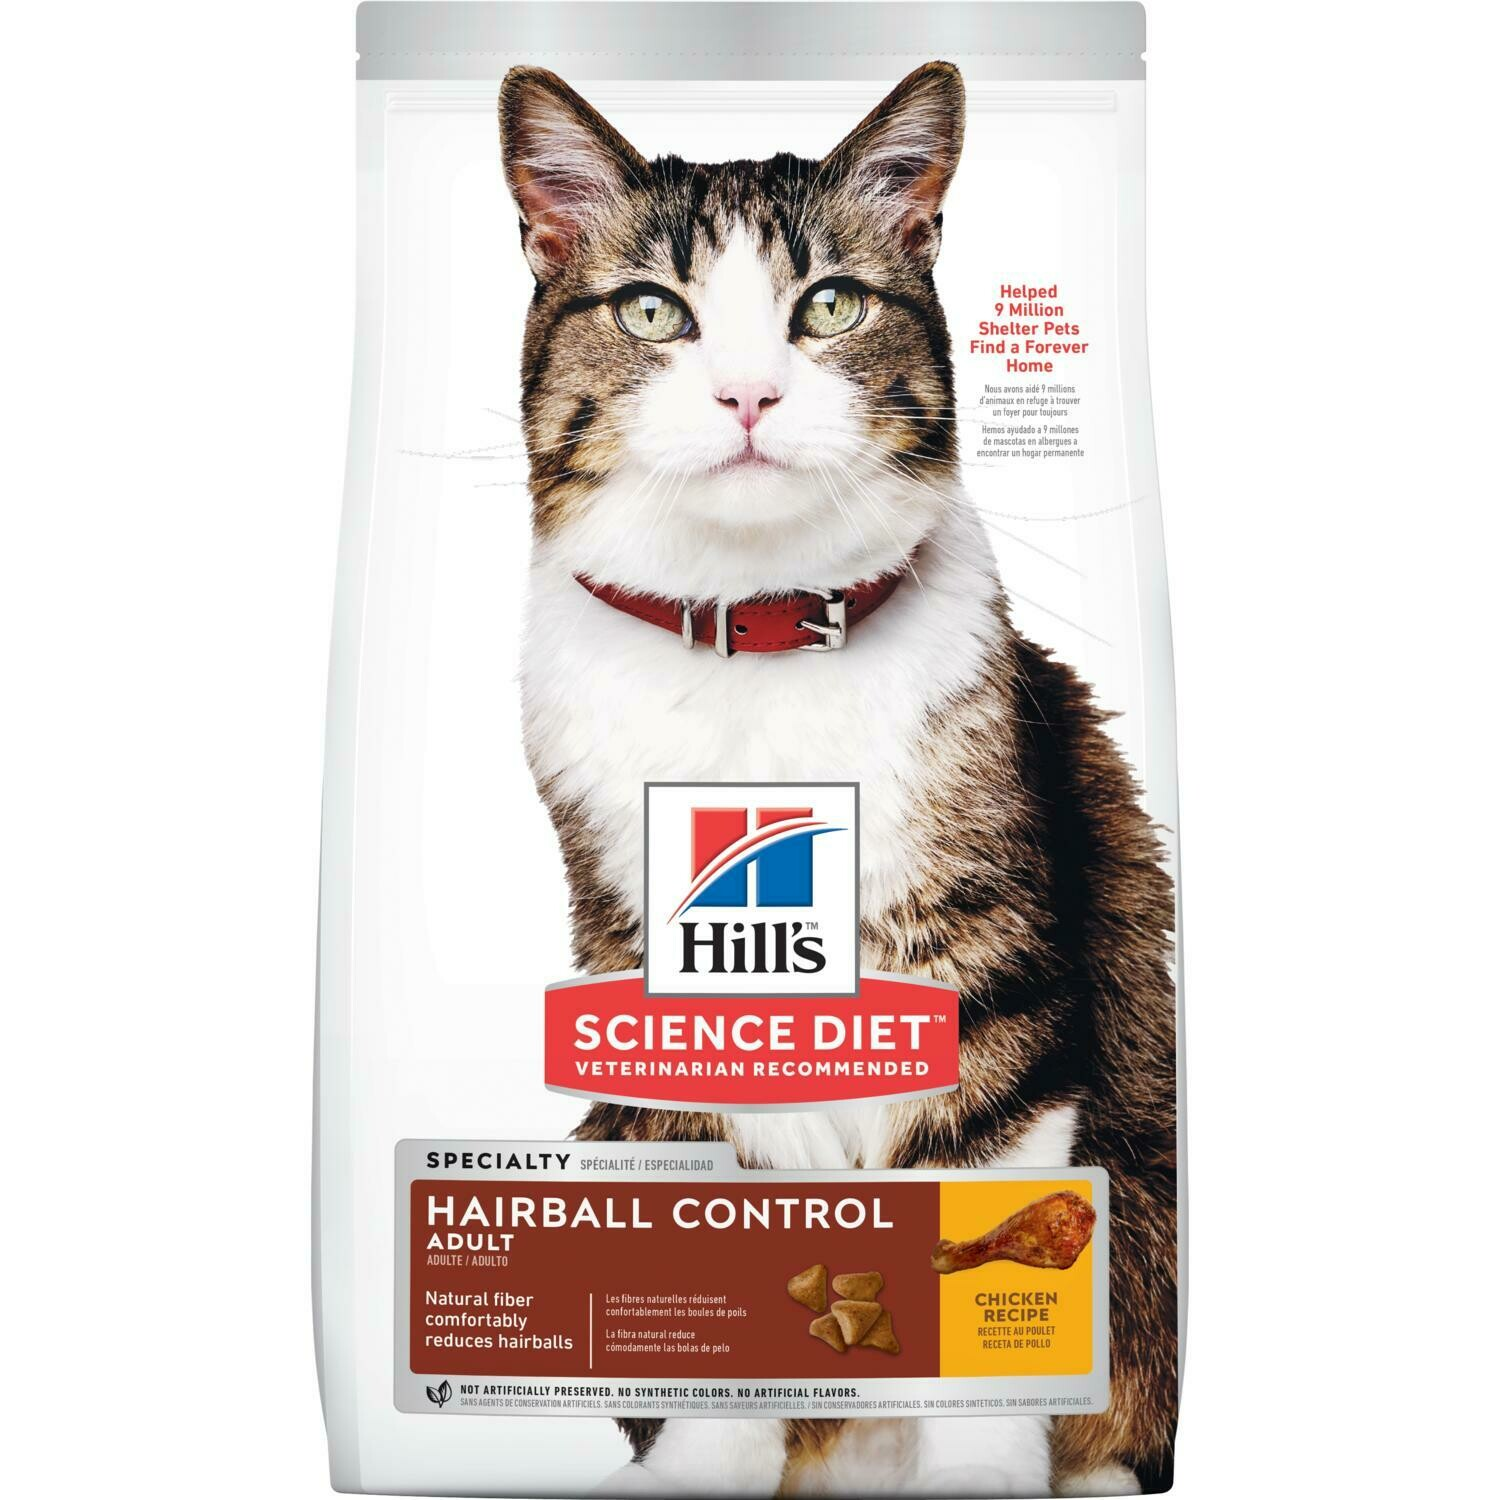 Hill's Adult Hairball Control cat food